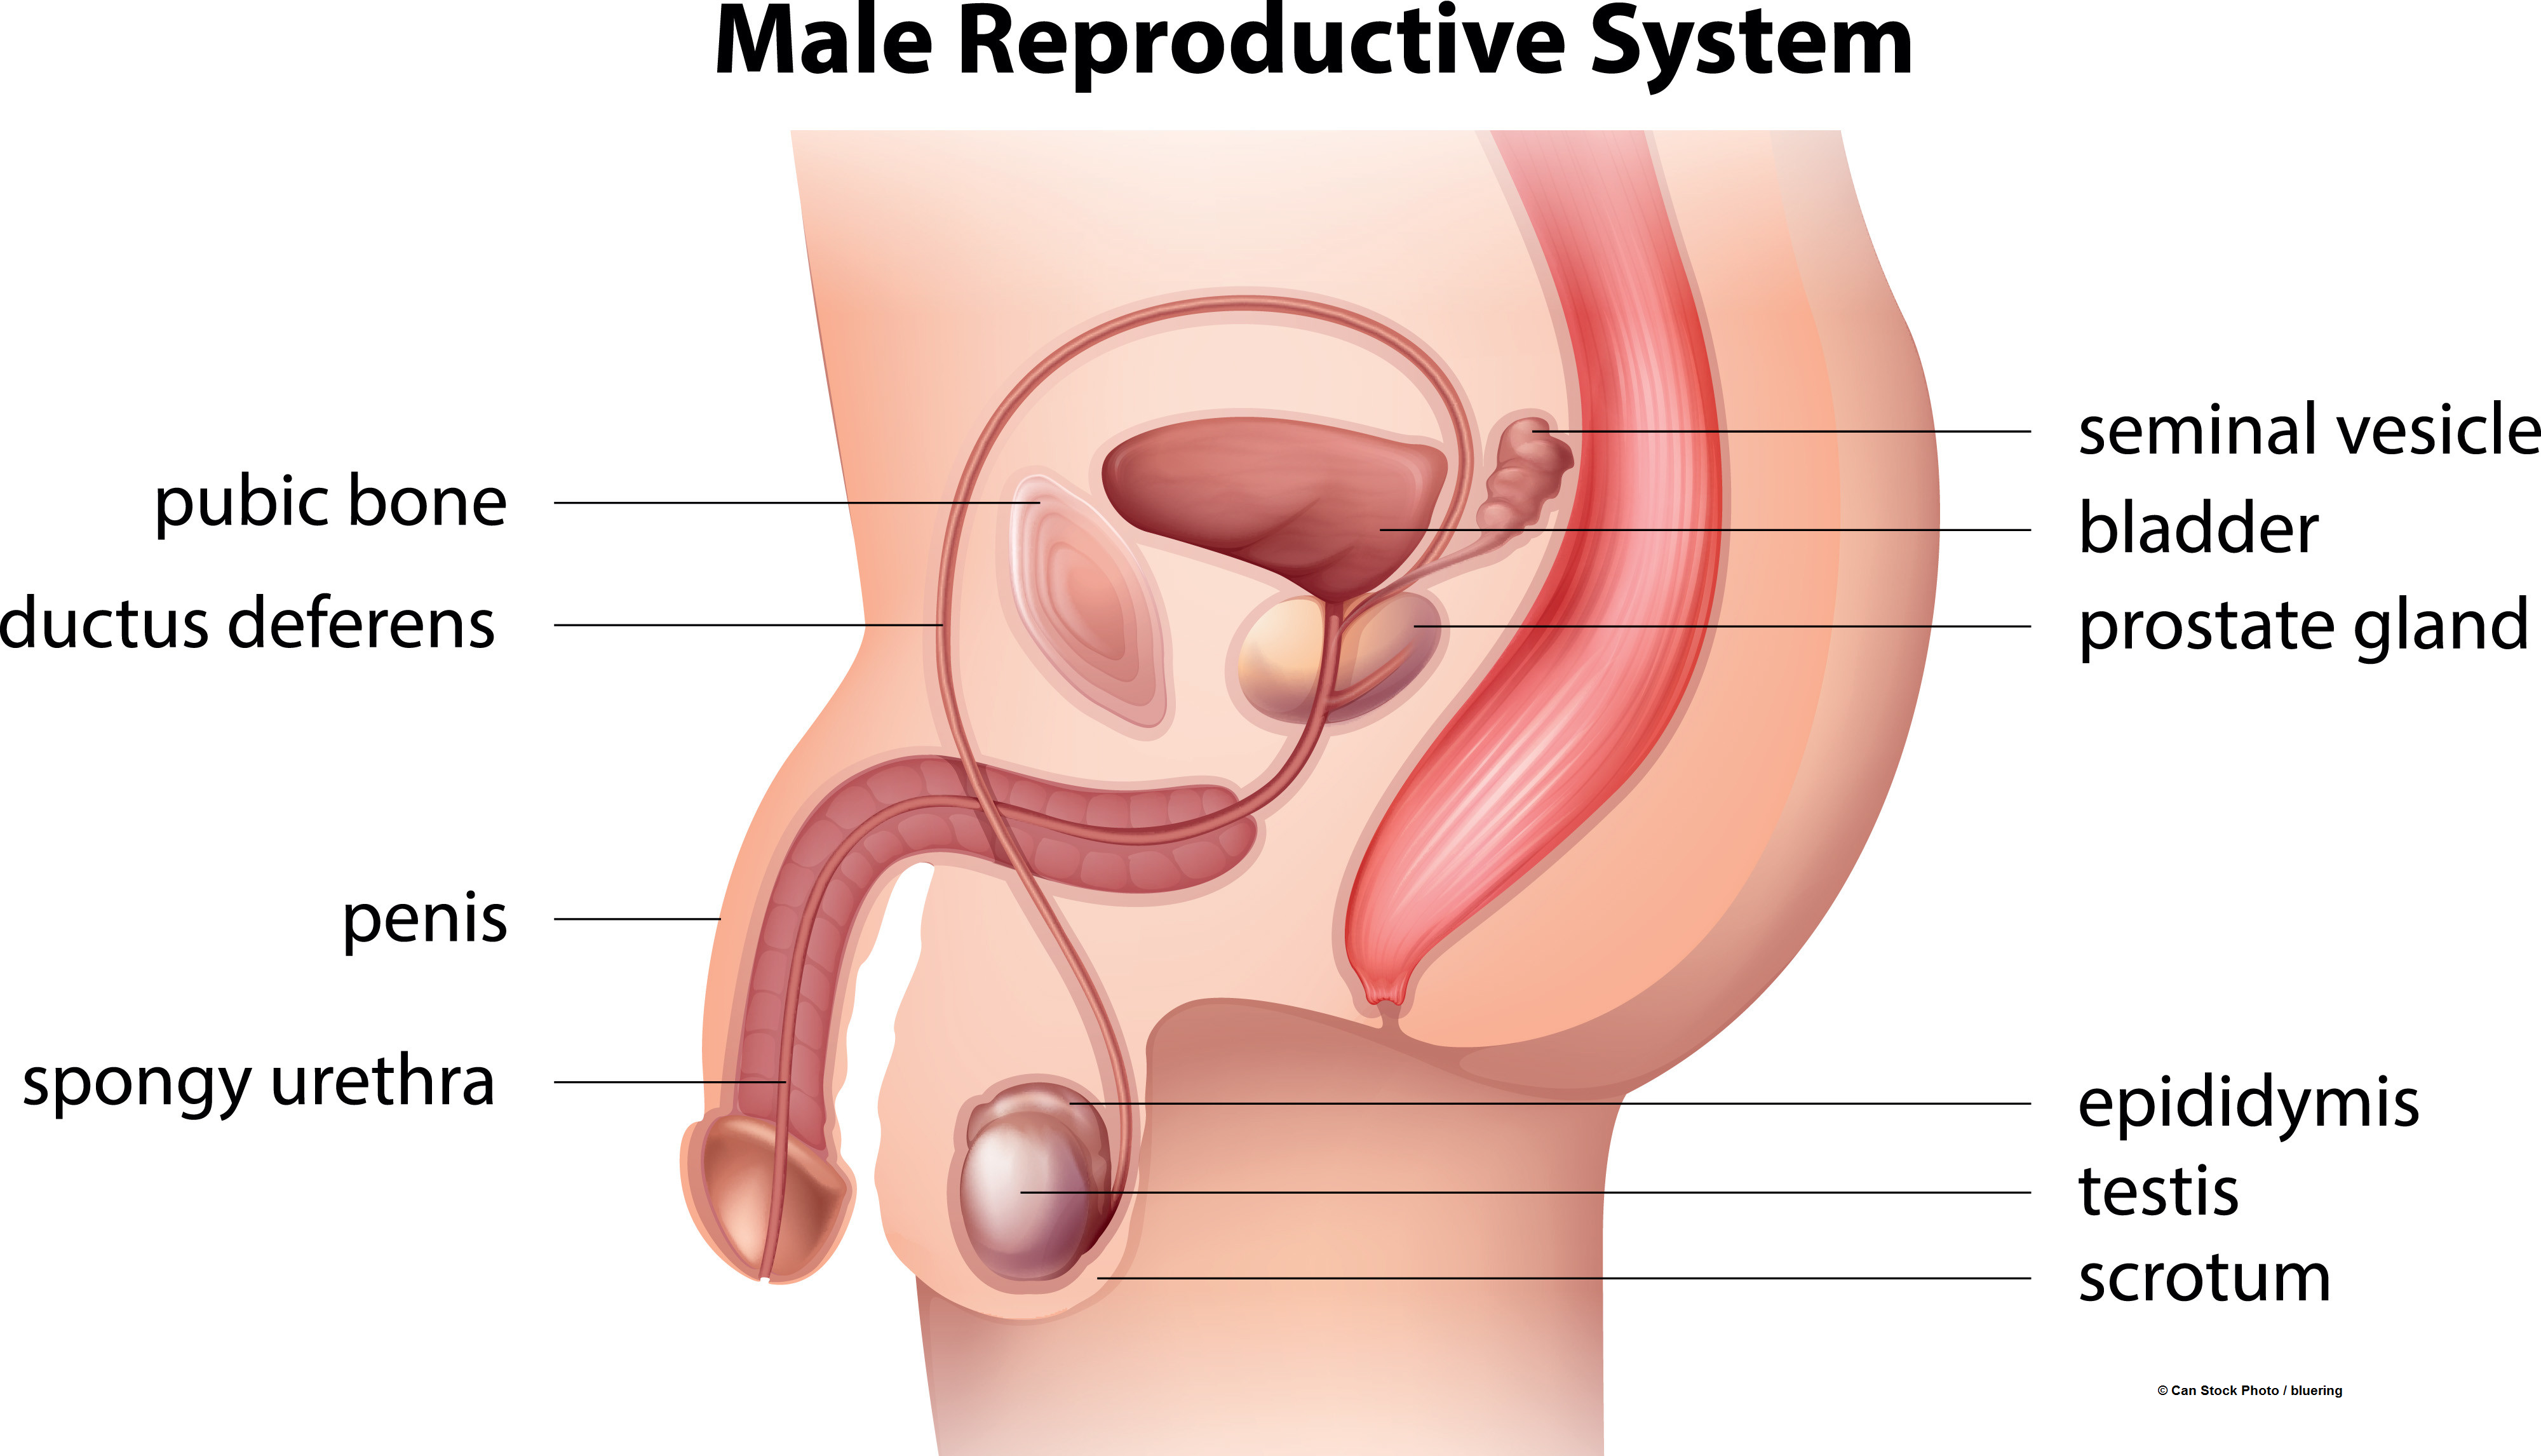 Male Reproductive System Illustrations To Assist In Teaching